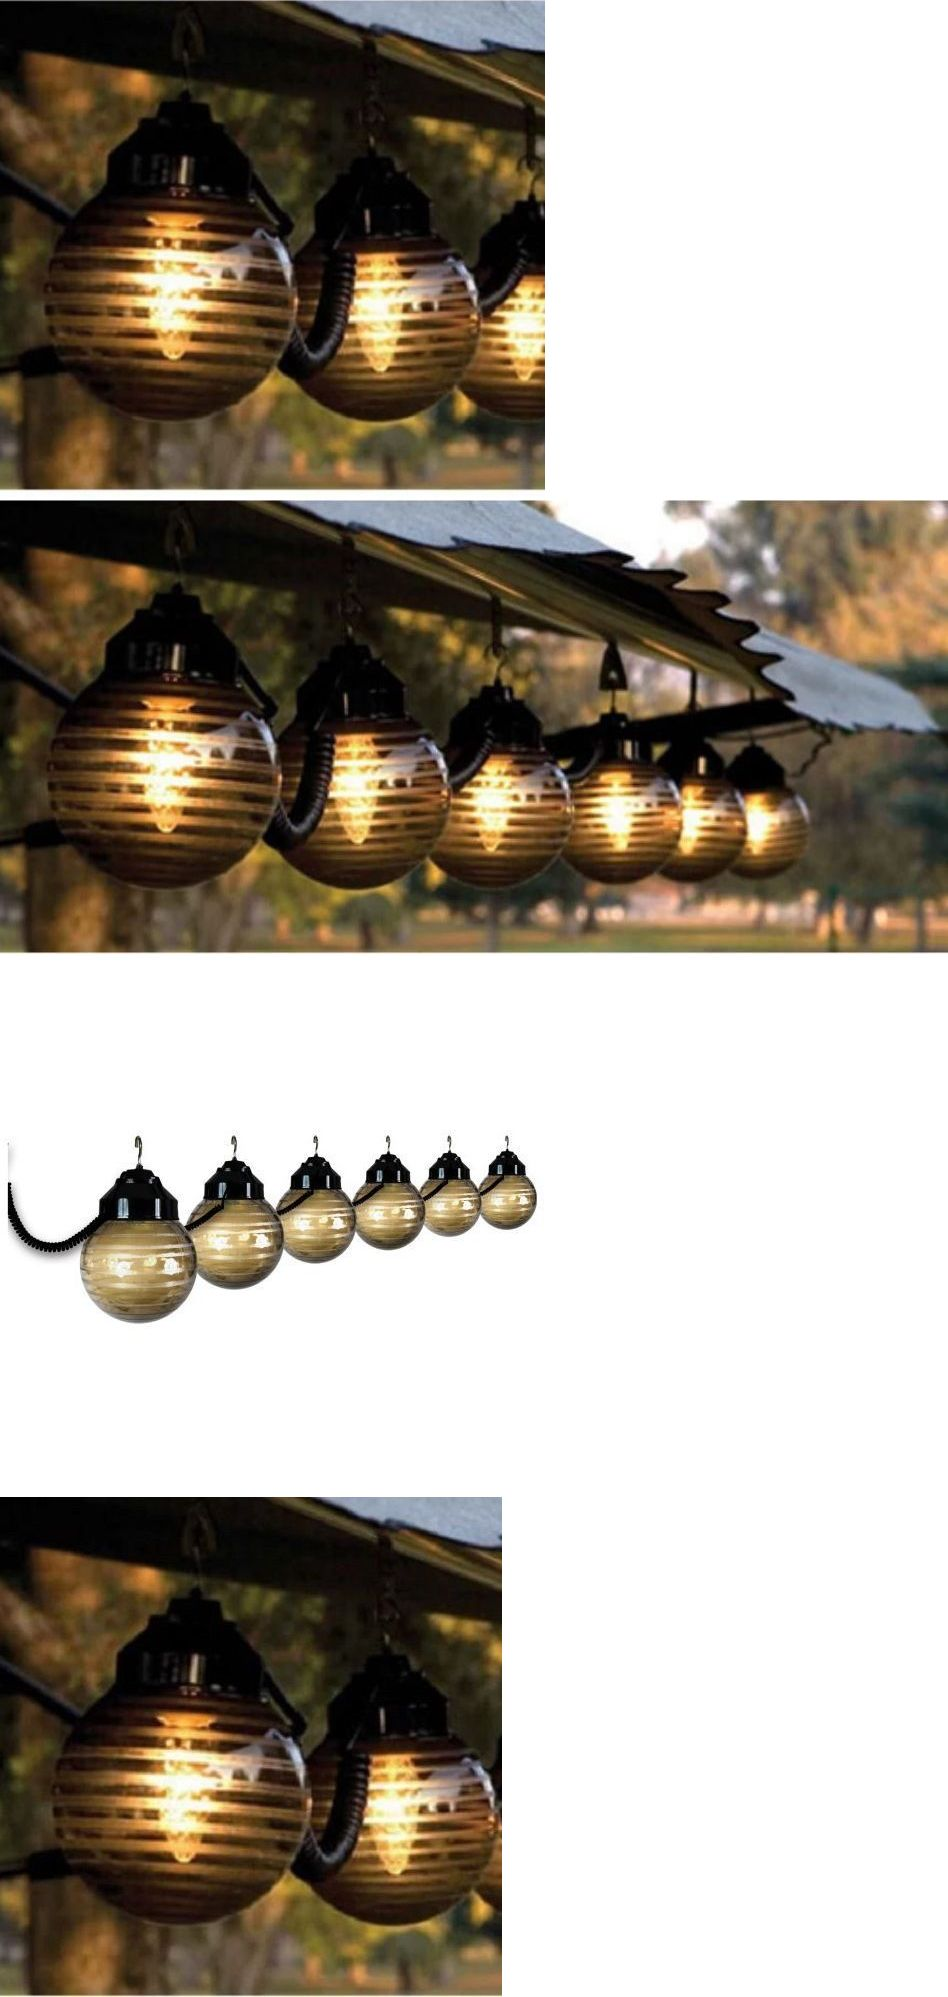 Outdoor String Lights 183394: Rv Patio Lights Party Porch Backyard Awning  String Lamp Large Globe